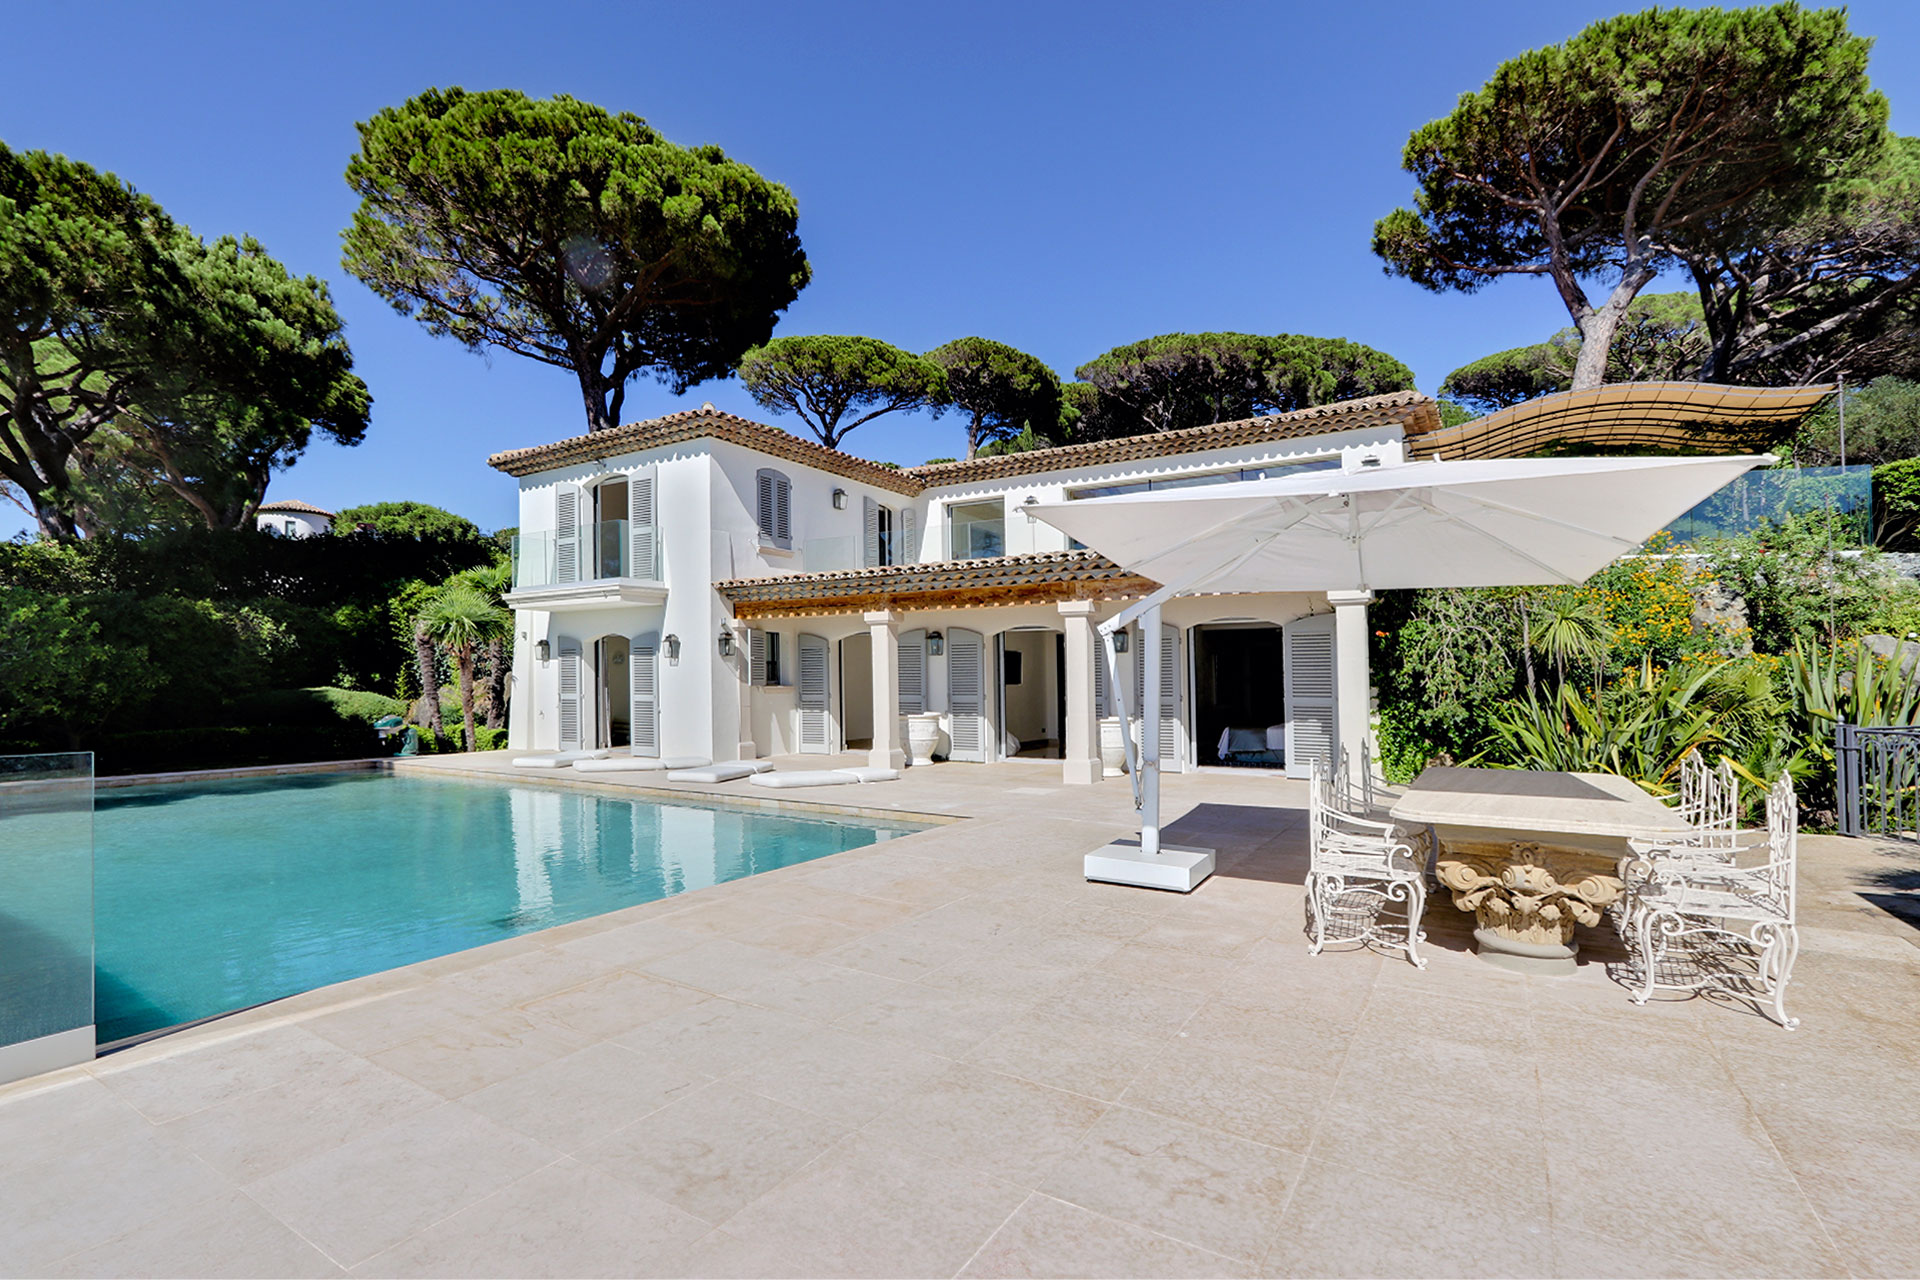 Luxury Property in Les Parcs de Saint Tropez, Côte d'Azur, France • View From The Garden and Pool Terrace | Listed by Bernard Corcos, CEO of Finest International | FINEST RESIDENCES